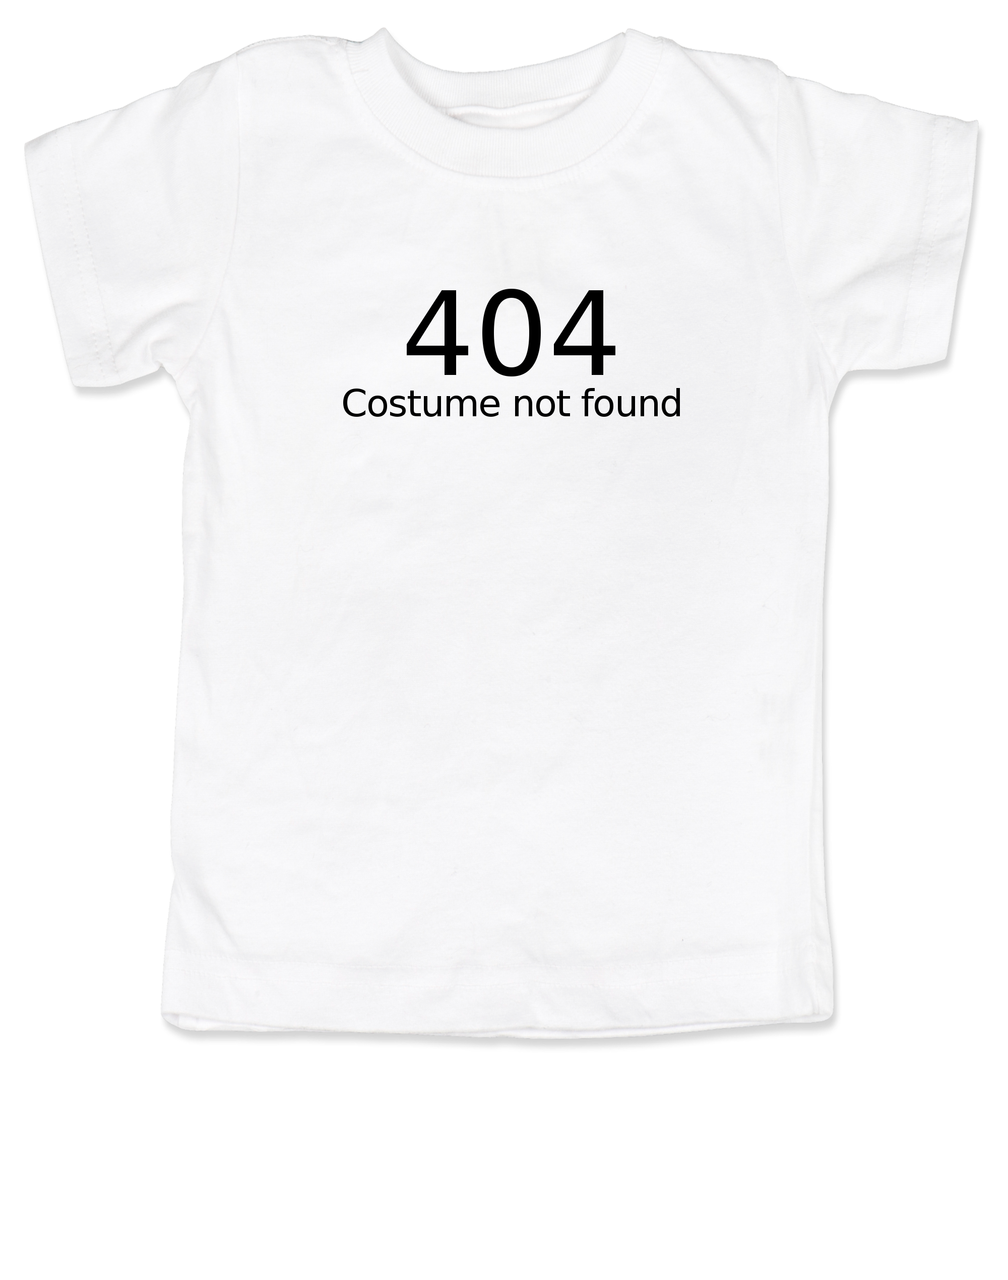 efbbb5318 Holiday: Halloween. 404 error costume not found toddler shirt, child 404  costume not found, computer error